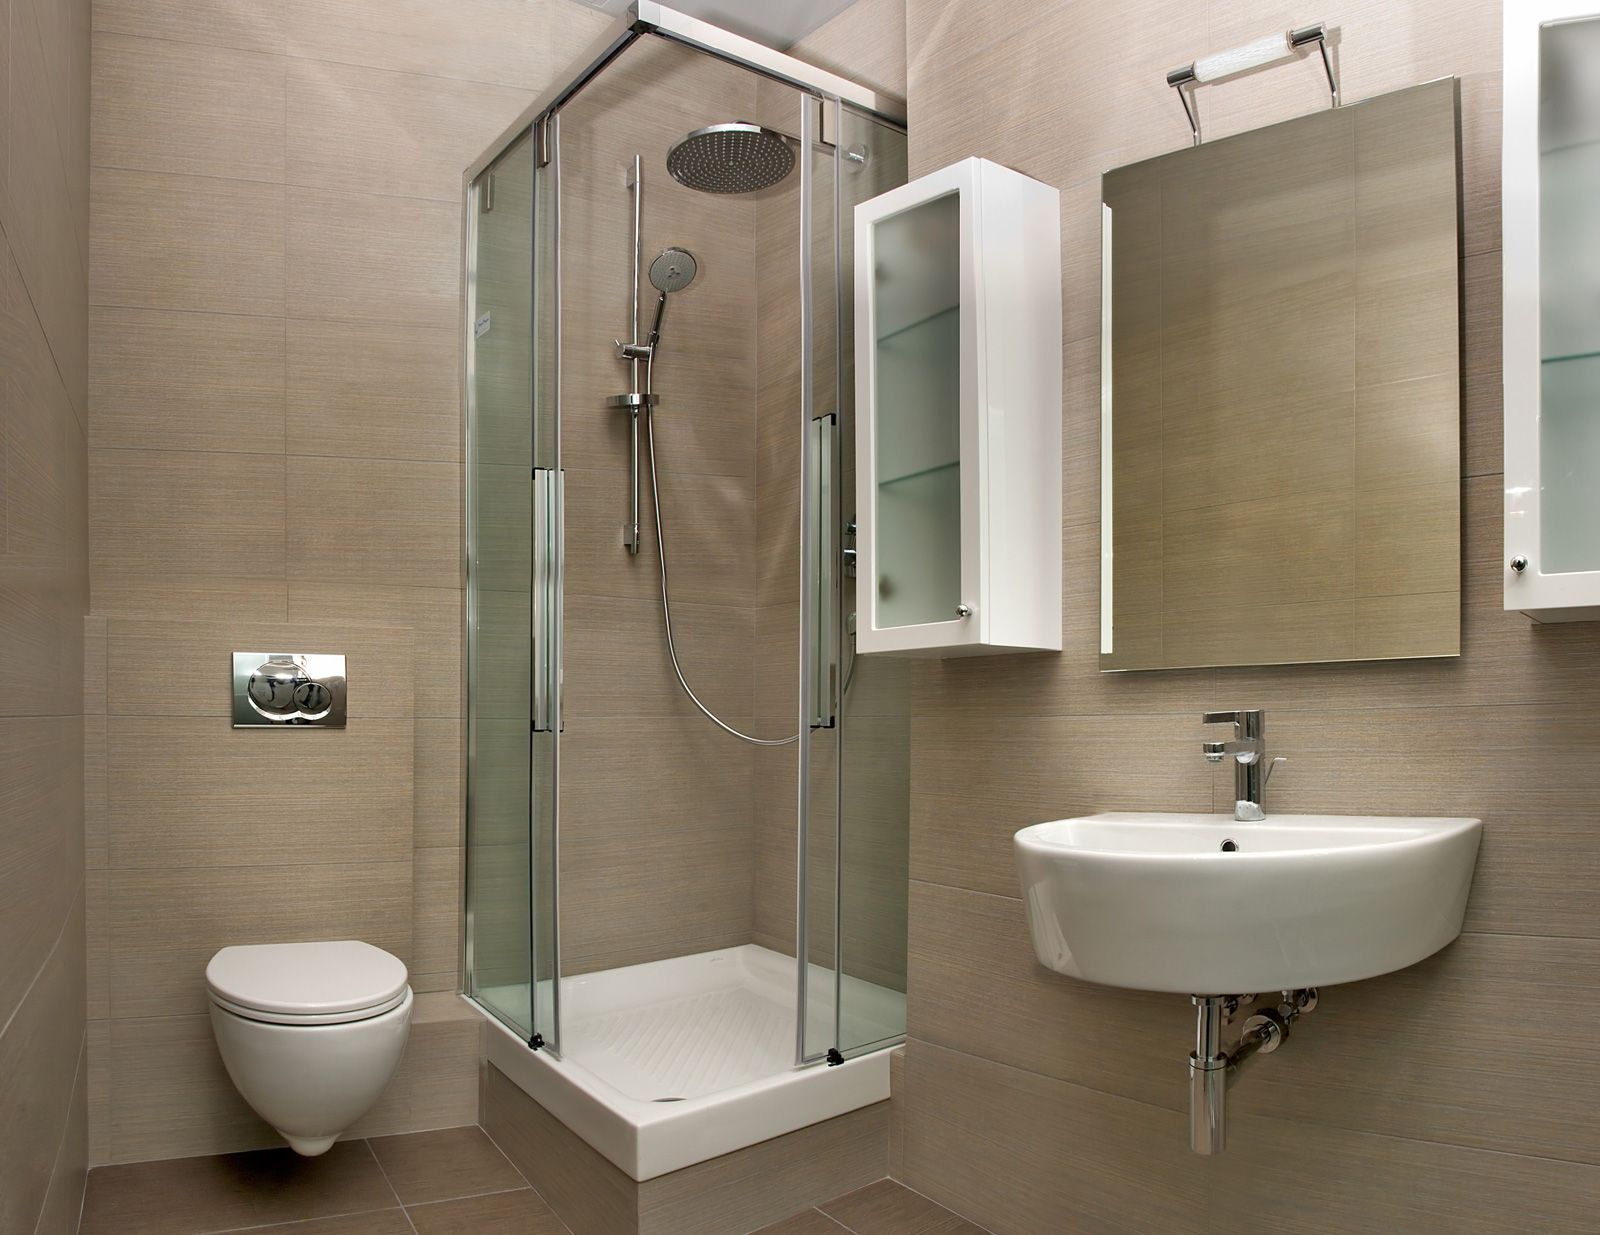 Photo Album Website small bathroom shower ideas Google Search